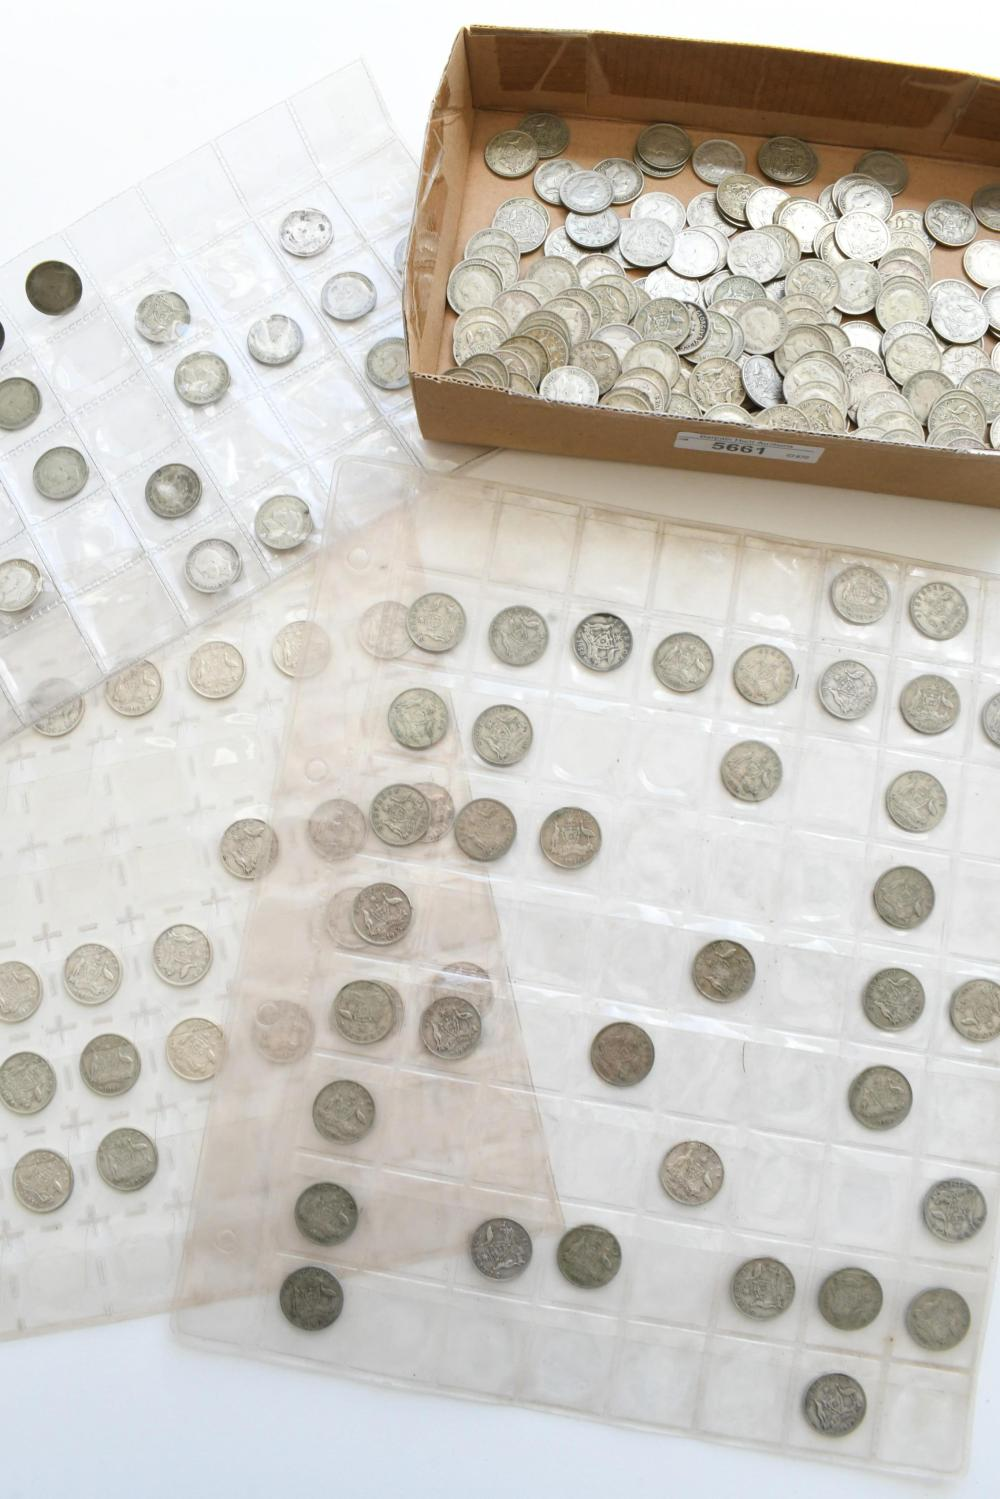 Approx. 252 Australian sixpence coins